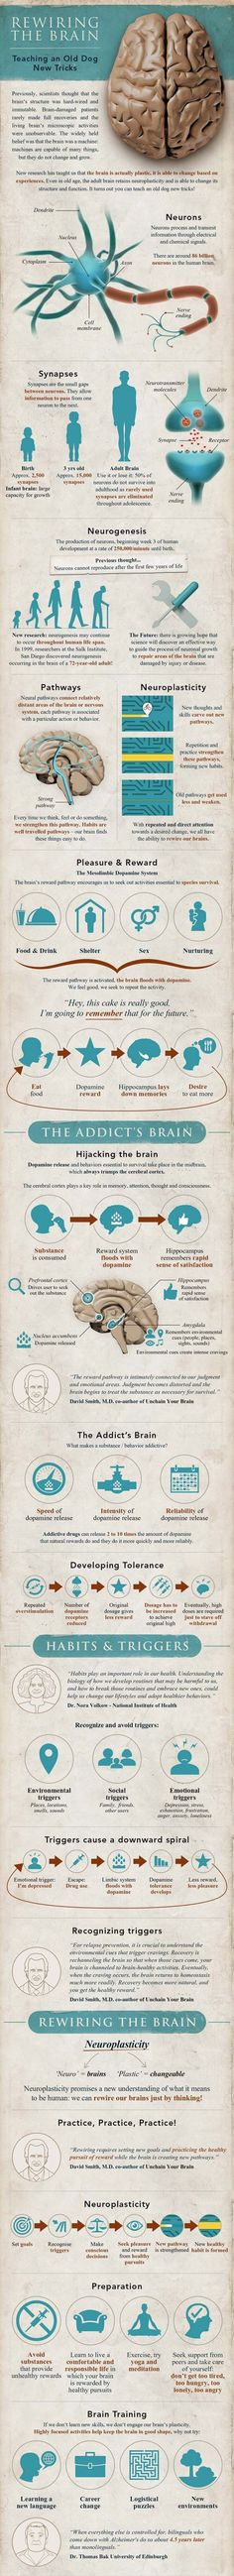 Understanding Neuro-plasticity - meaning are brains are constantly changing and evolving. It also means whatever the habit, or situation we change our thinking or behavior. Habits & change.